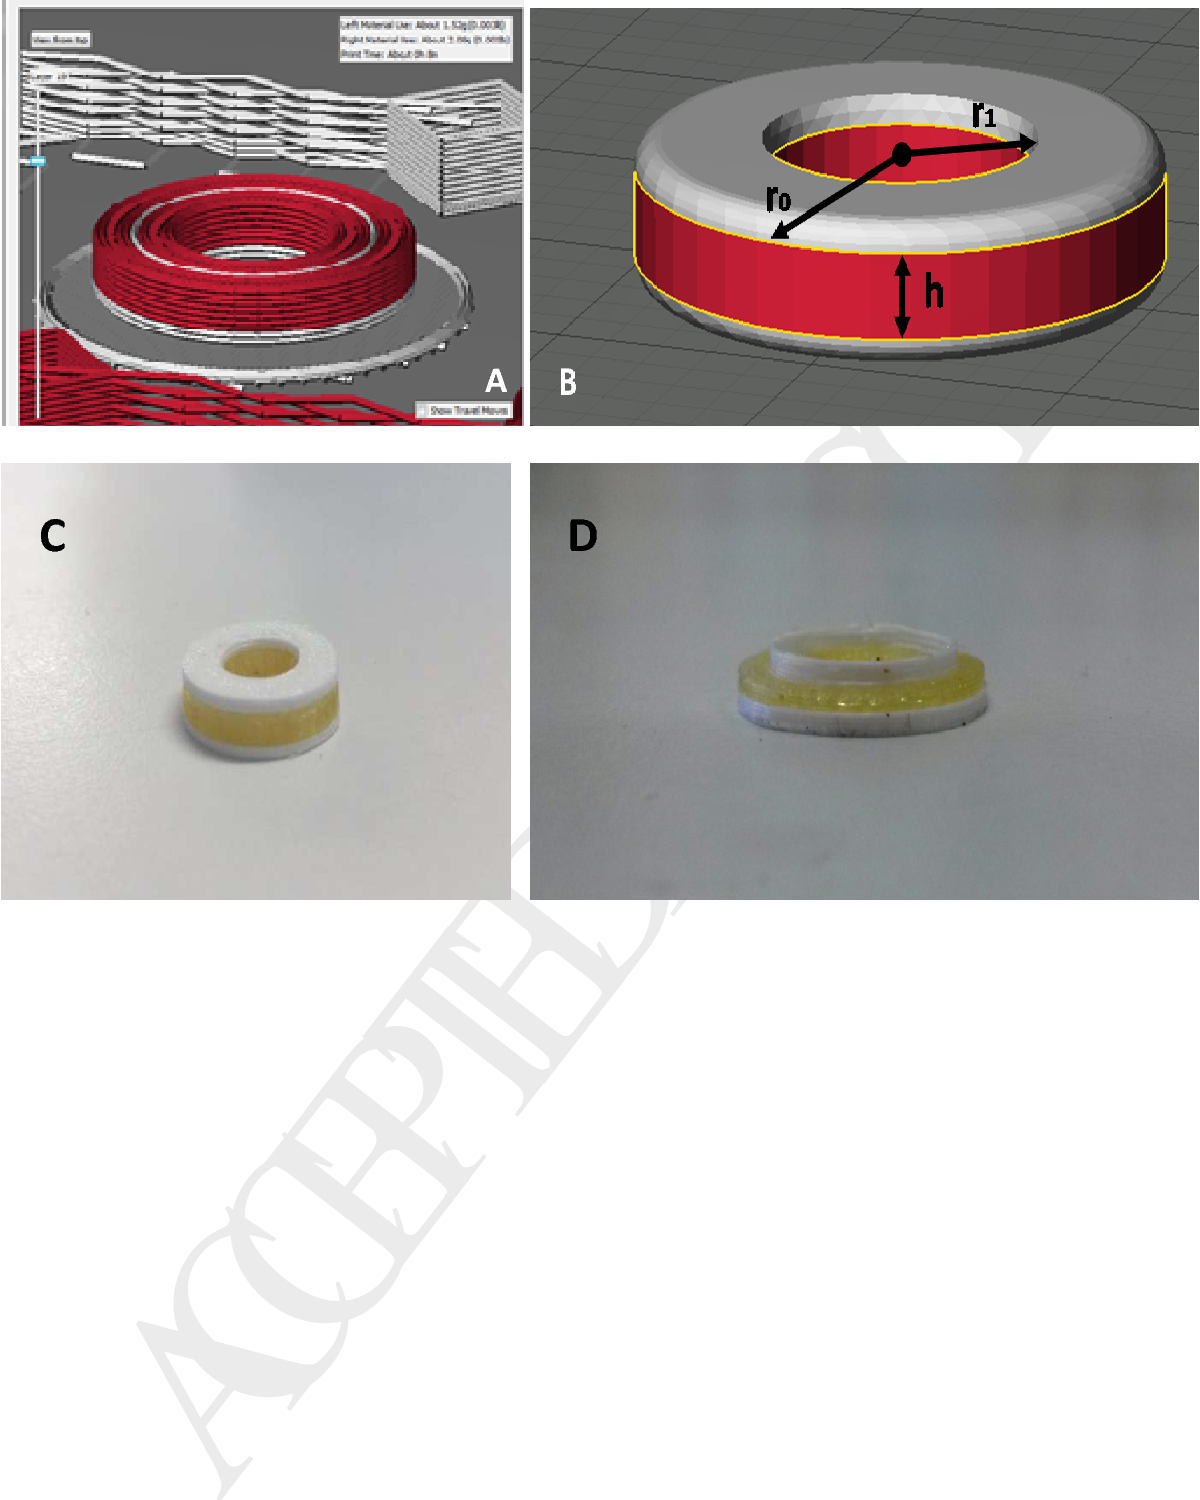 D printed oral solid dosage forms containing